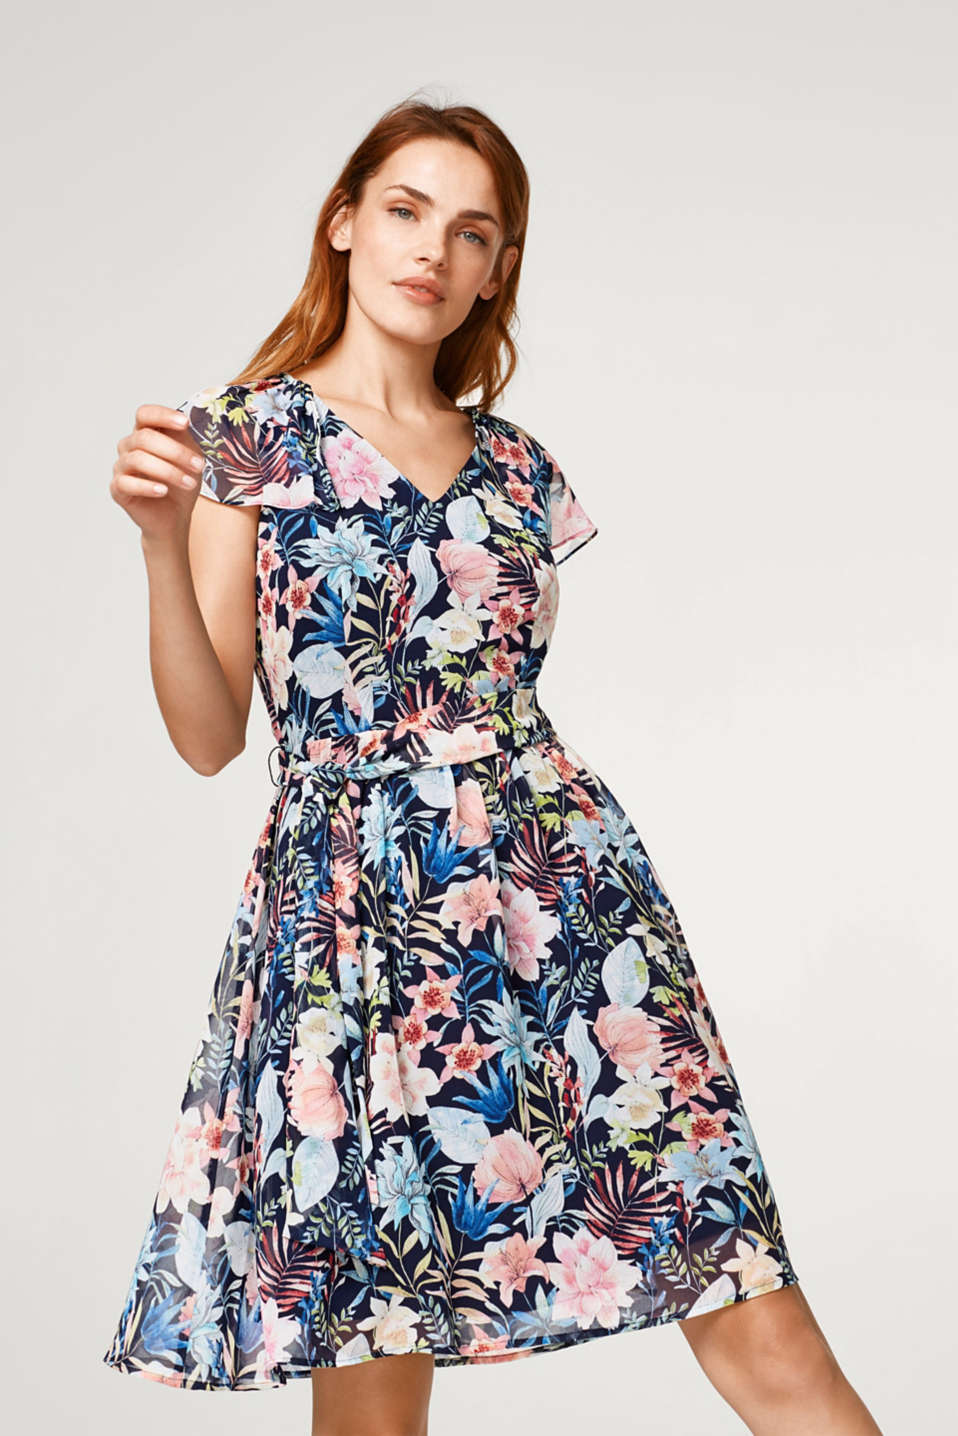 Esprit - Chiffon dress with a floral print and cap sleeves